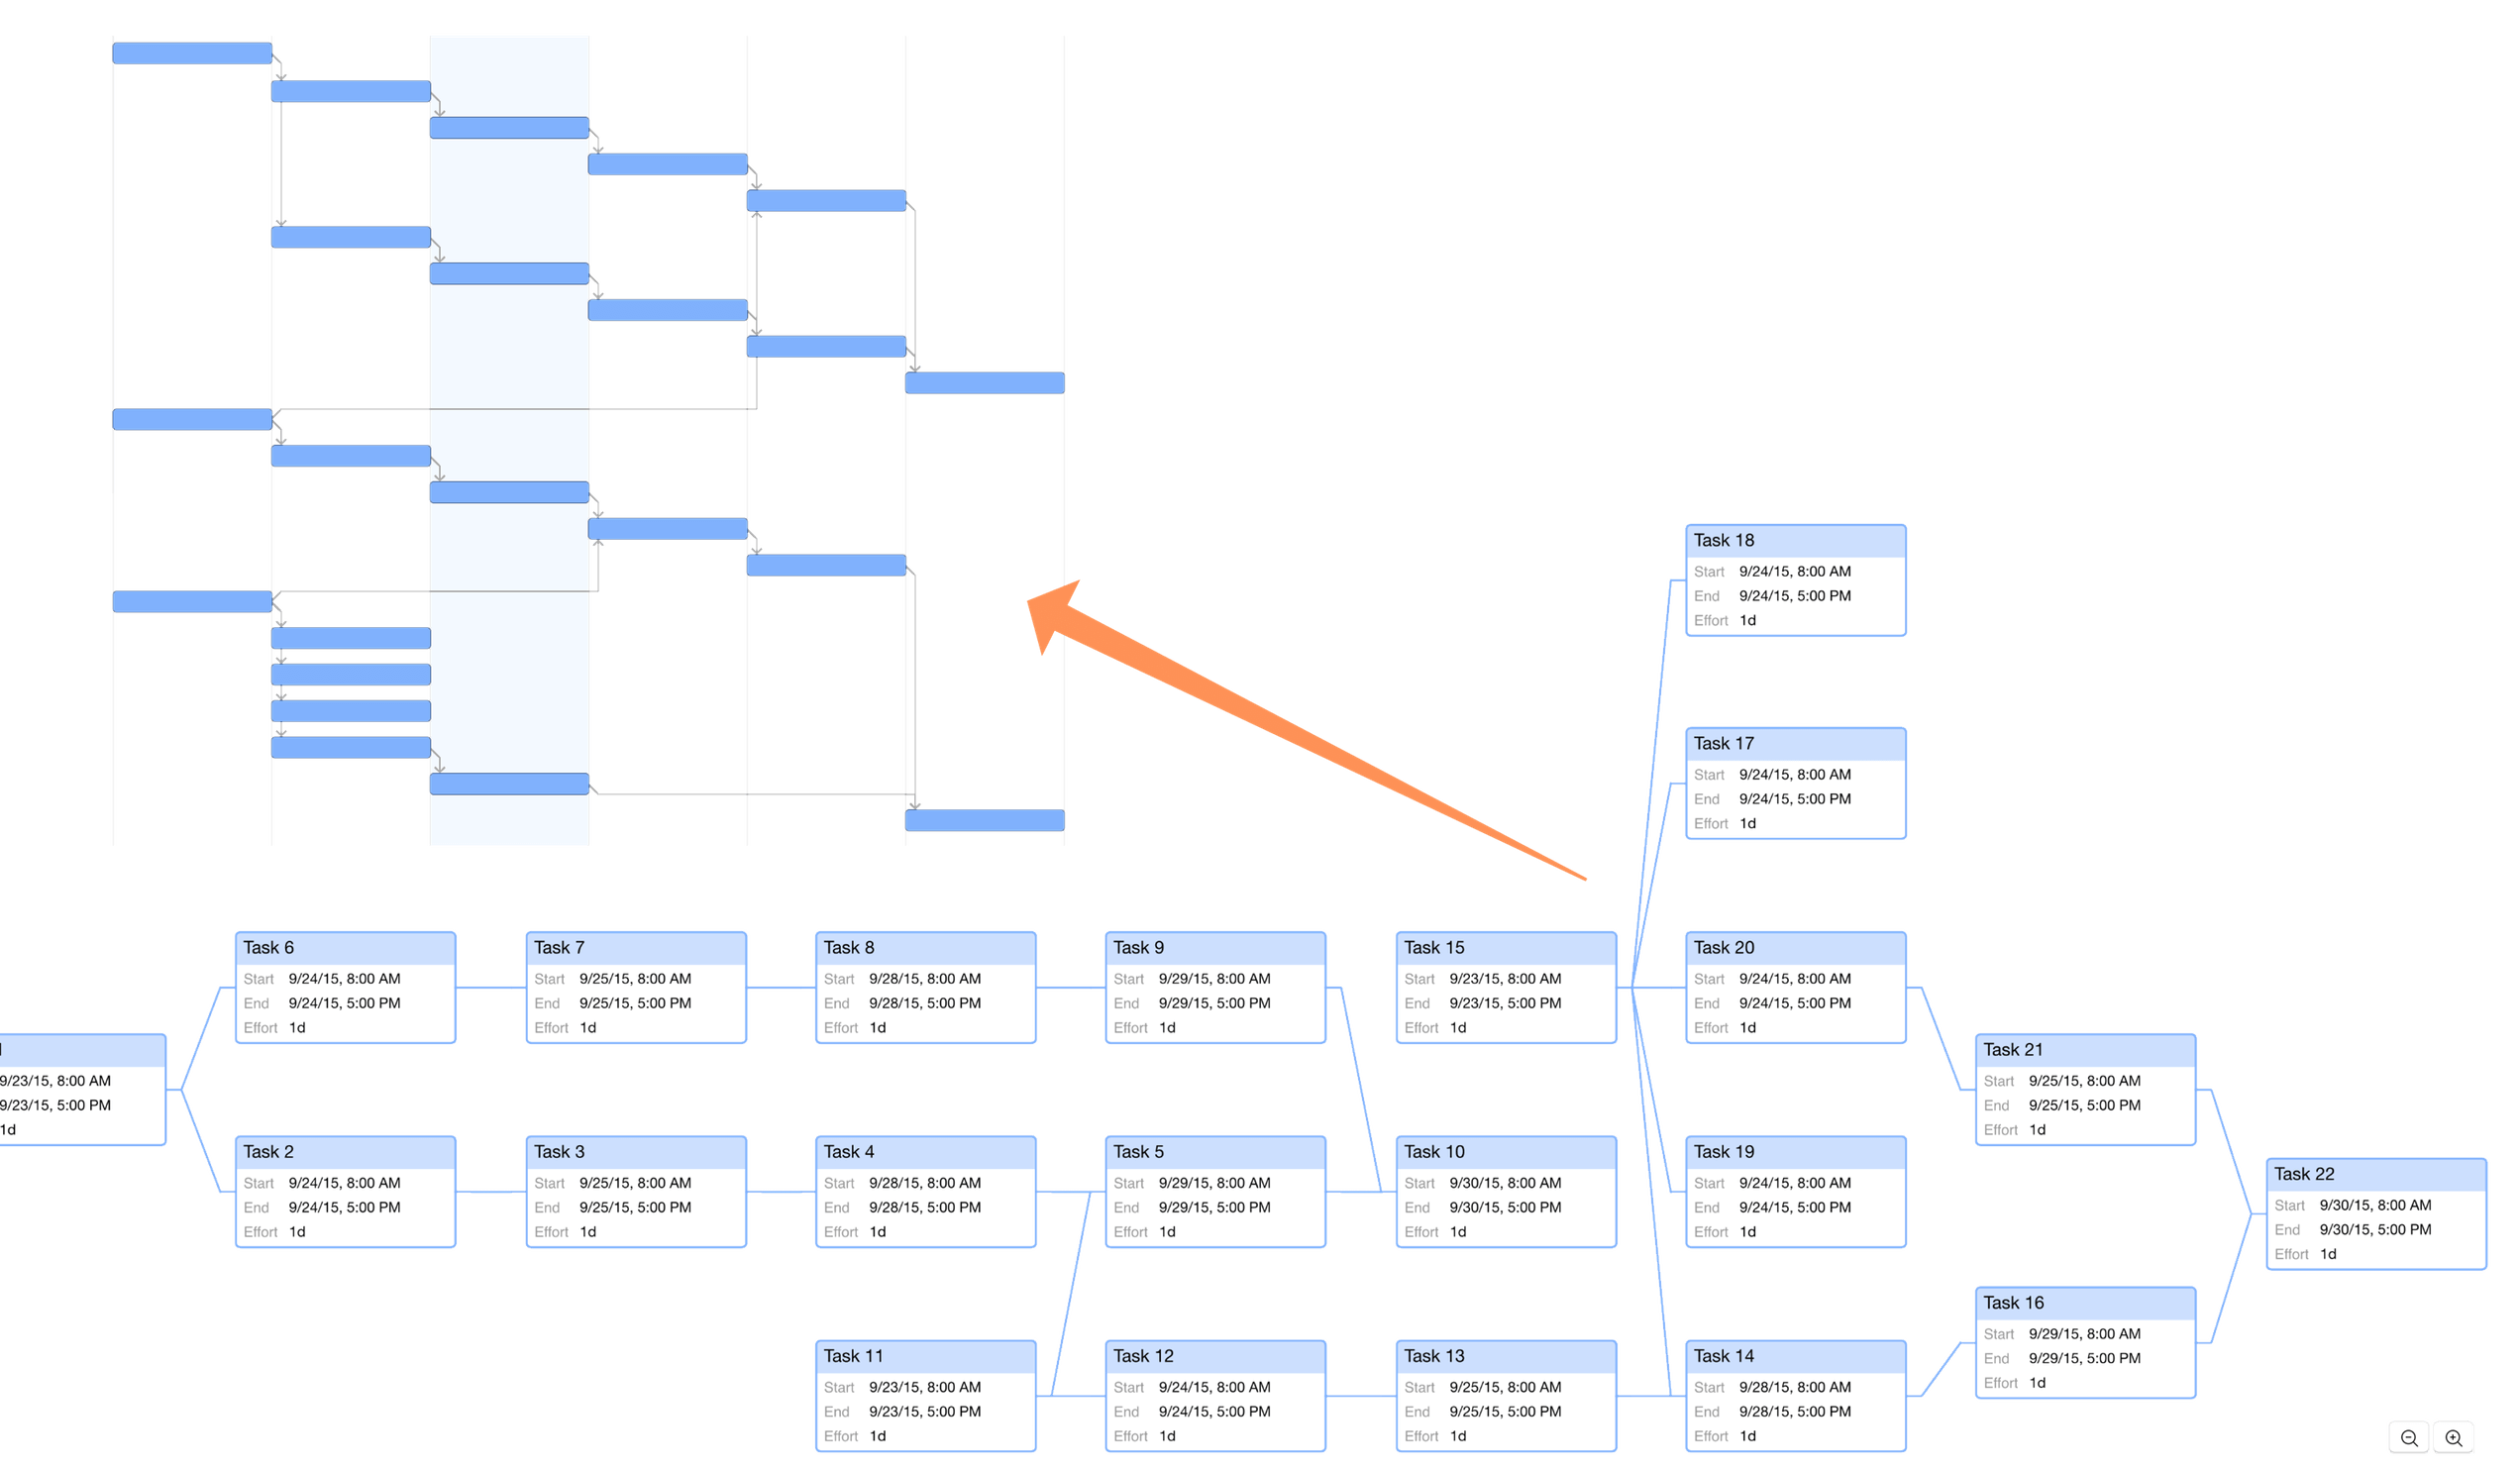 A more complex project diagrammed in Network View, compared to its appearance in the Gantt chart.